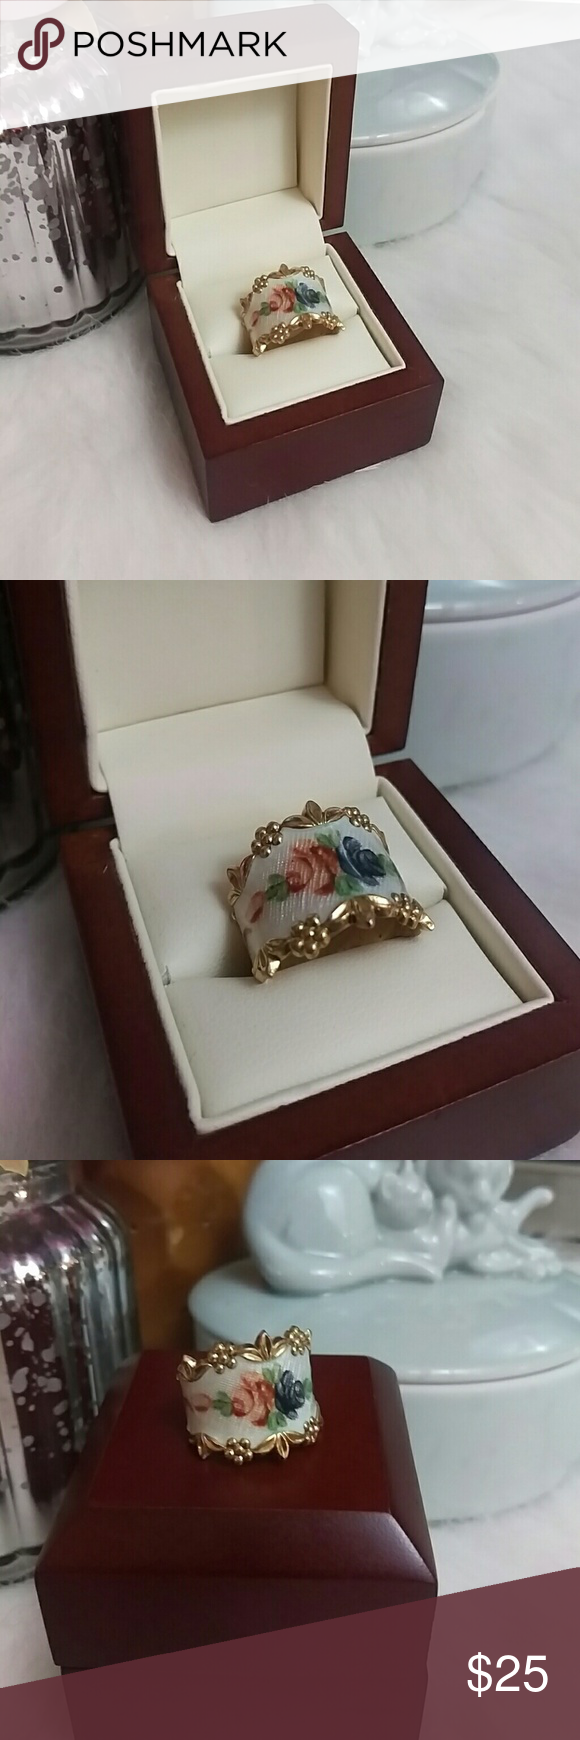 Vintage gold plated sterling silver floral ring Hand painted flowers on glass (I think) set in gold plated sterling silver. Stamped Sterling. Size 8 Jewelry Rings